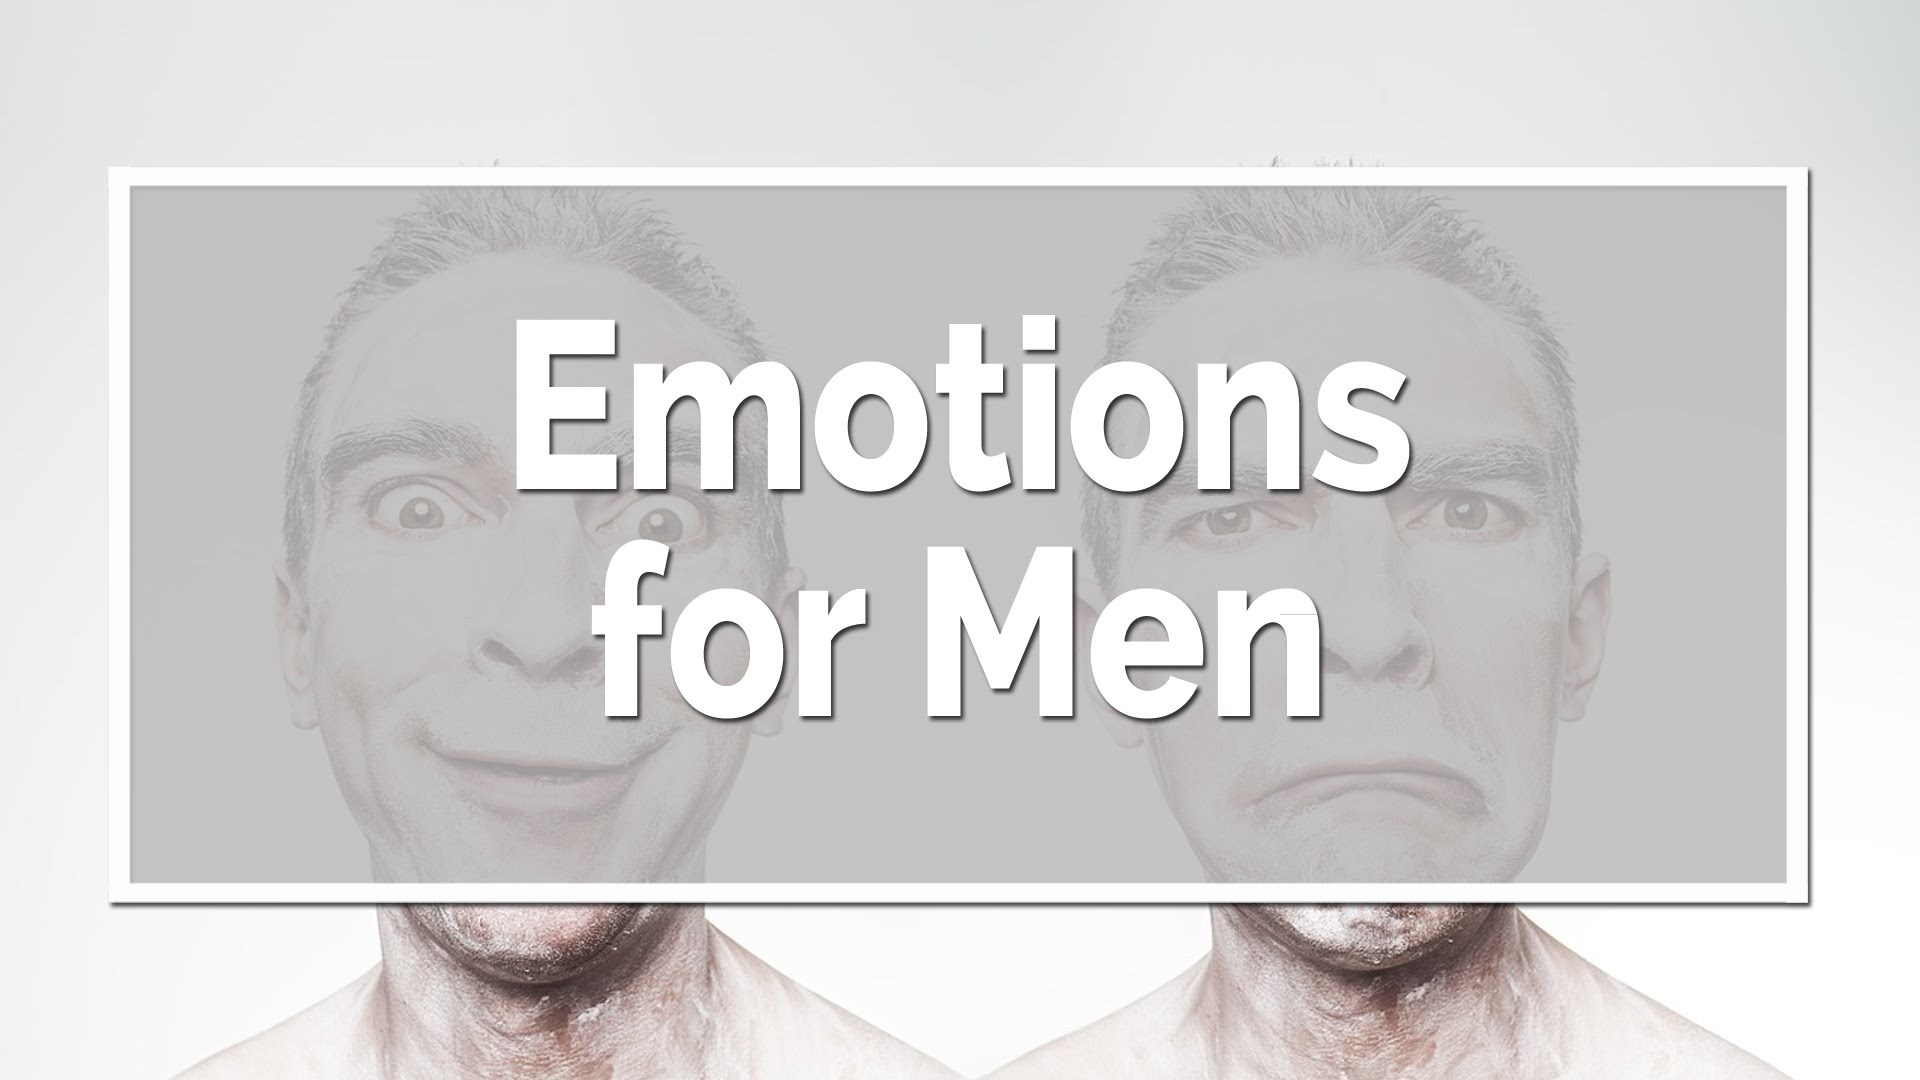 Emotions for Men